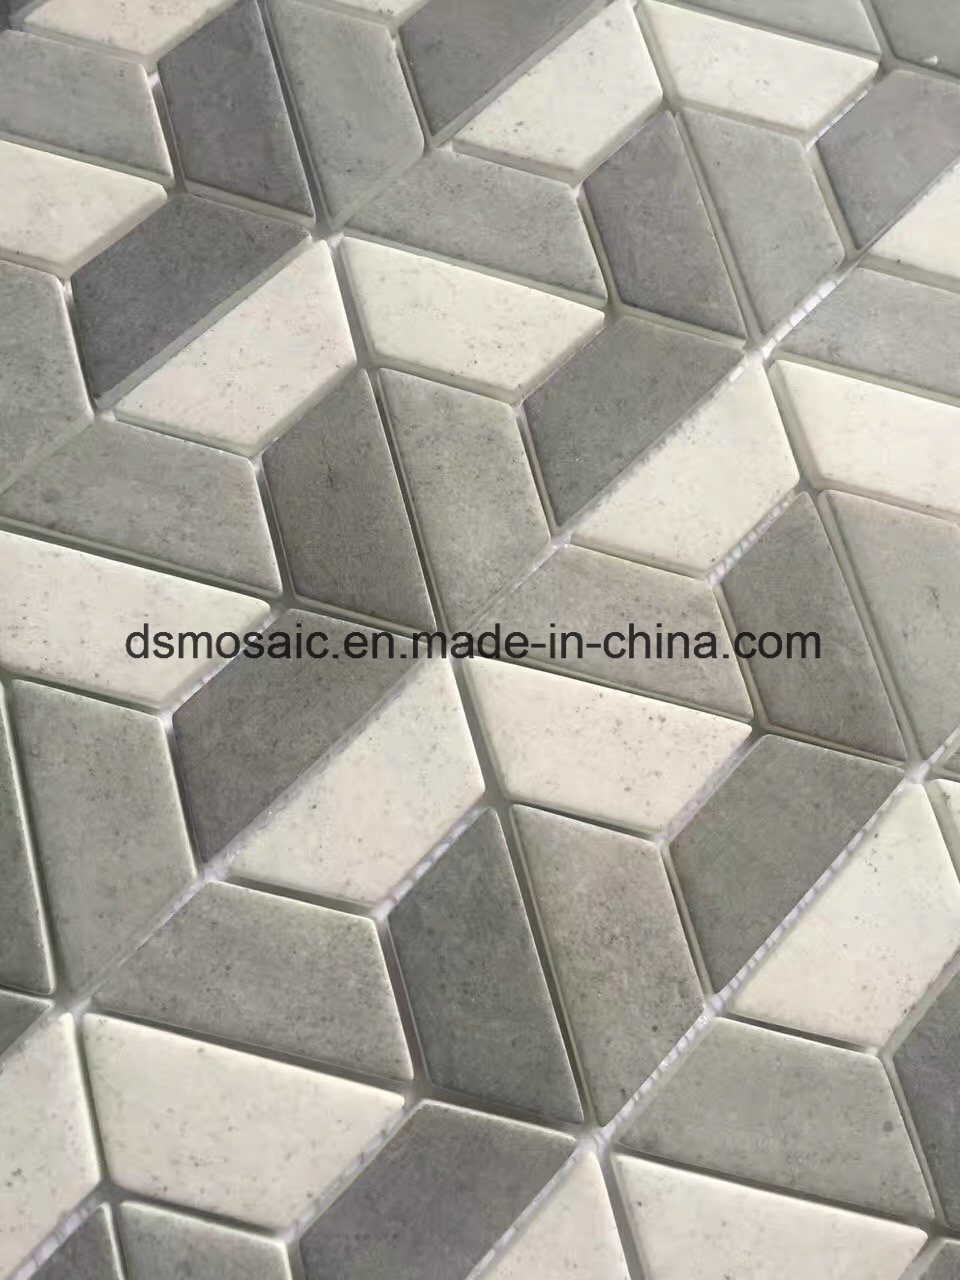 Newest Technology Ink Jet Printing Irregular Glass Mosaic Tile pictures & photos